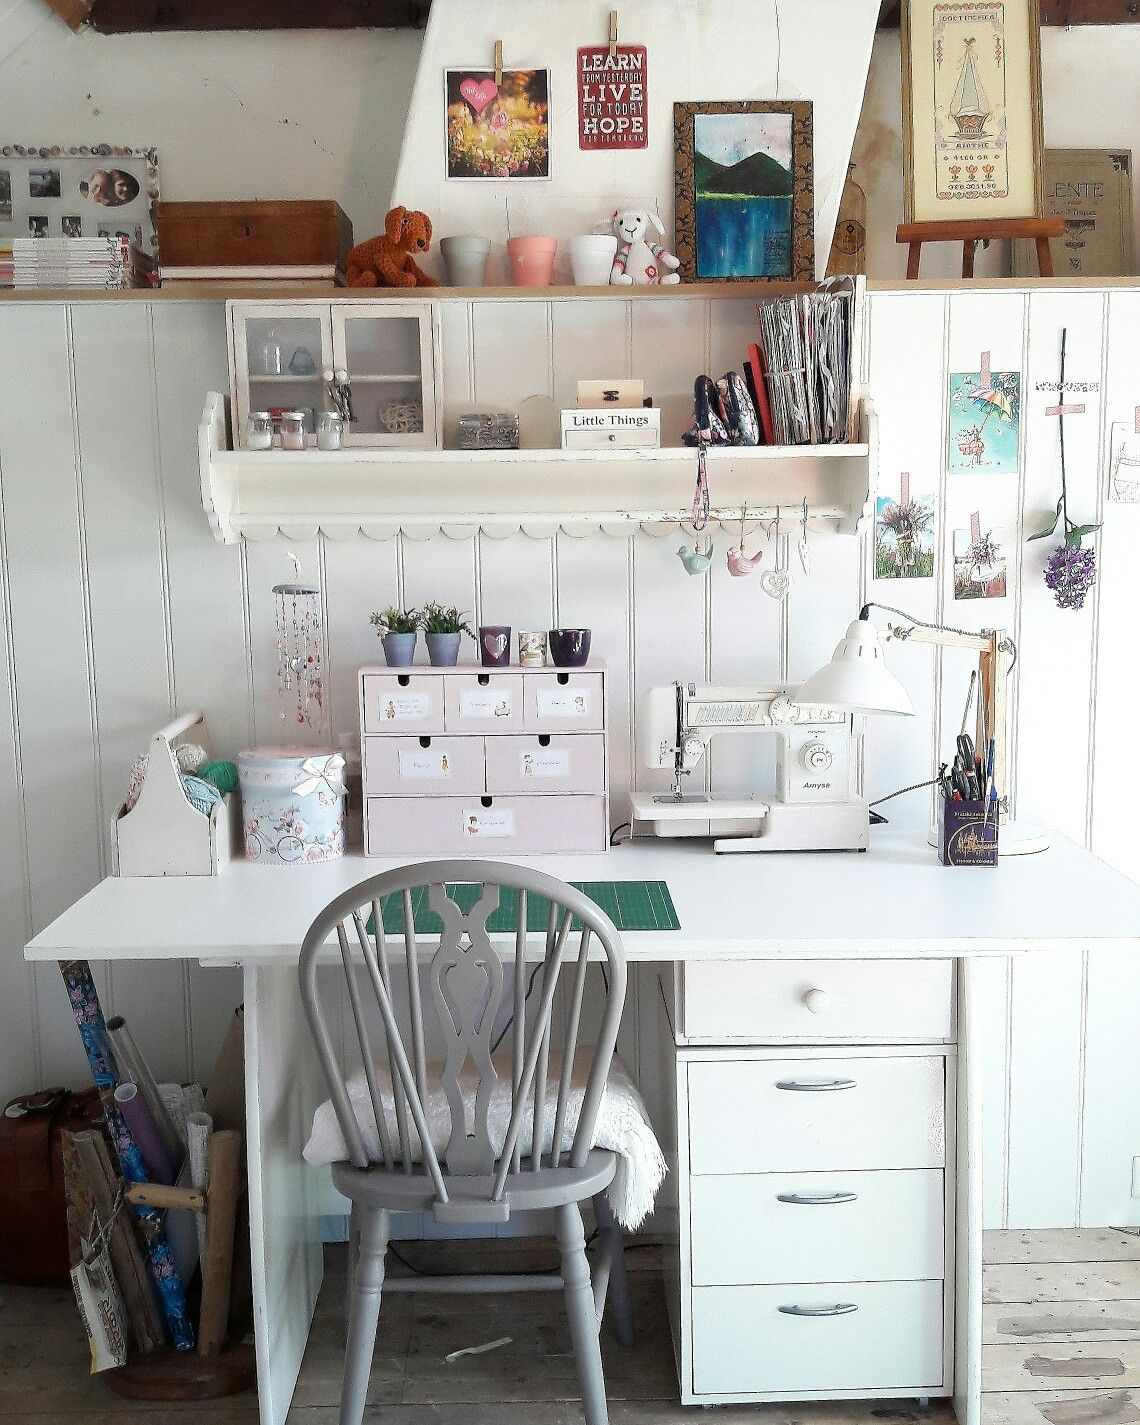 Work Space Hobby Room Atelier Craft In Our Attic Rustic Romantic Farmhouse Style